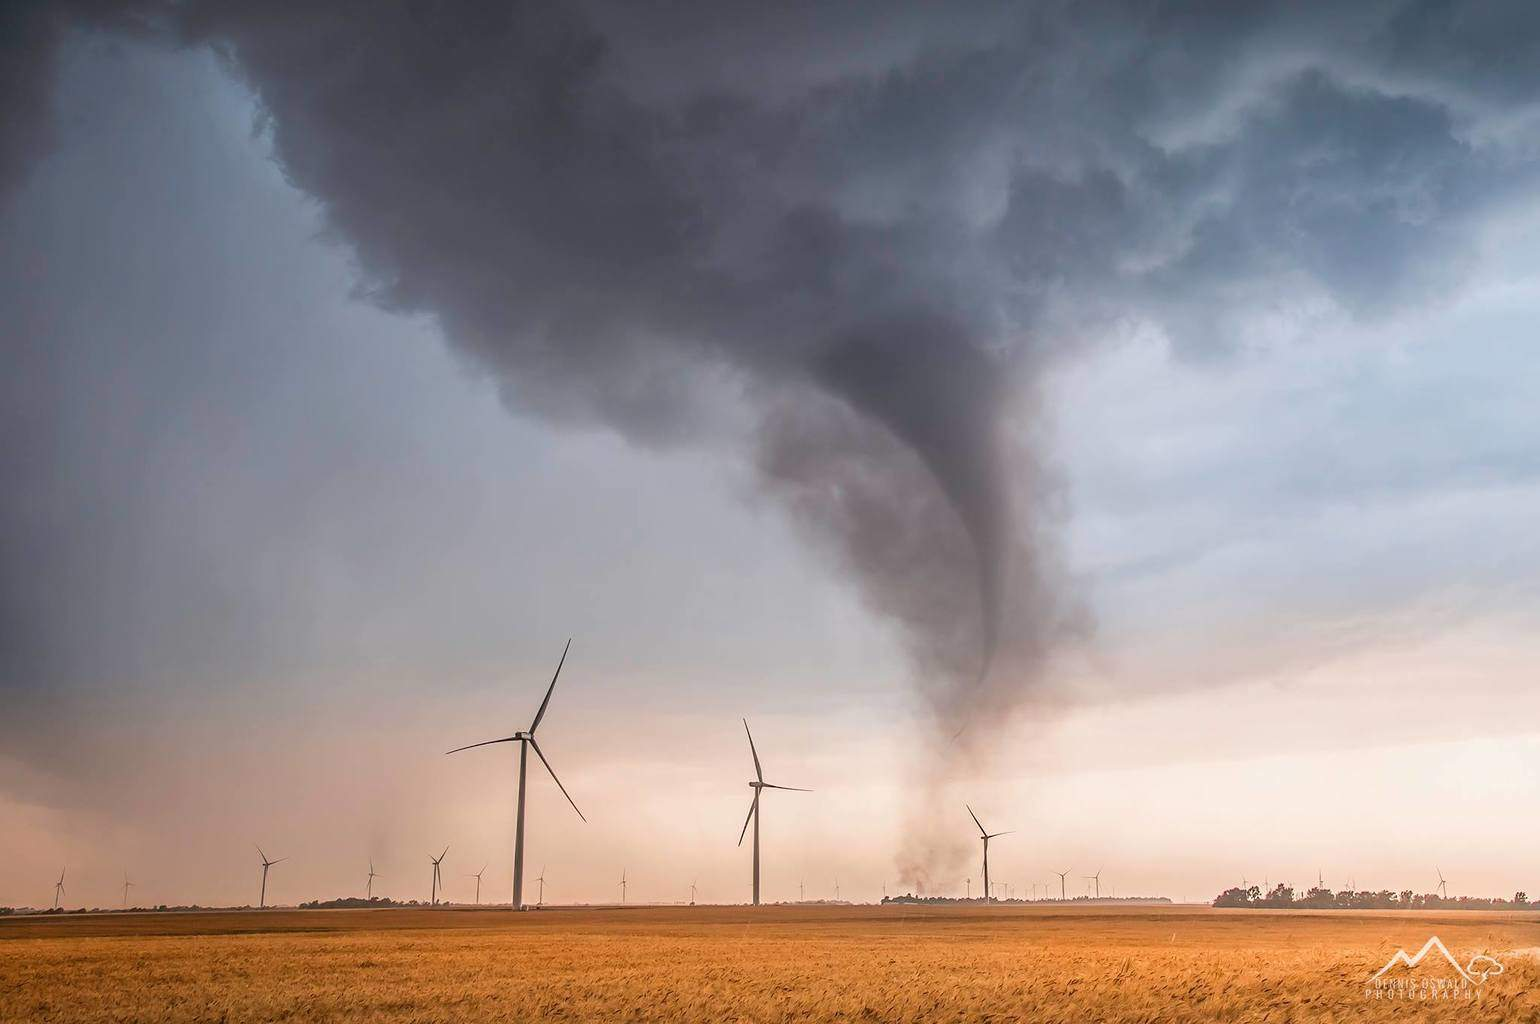 The Rago,KS tornado is gaining its power. Some windmills will not survive this EF3 rated twister on May 19th 2012.  We could watch almost the entire lifecycle over 30 minutes.